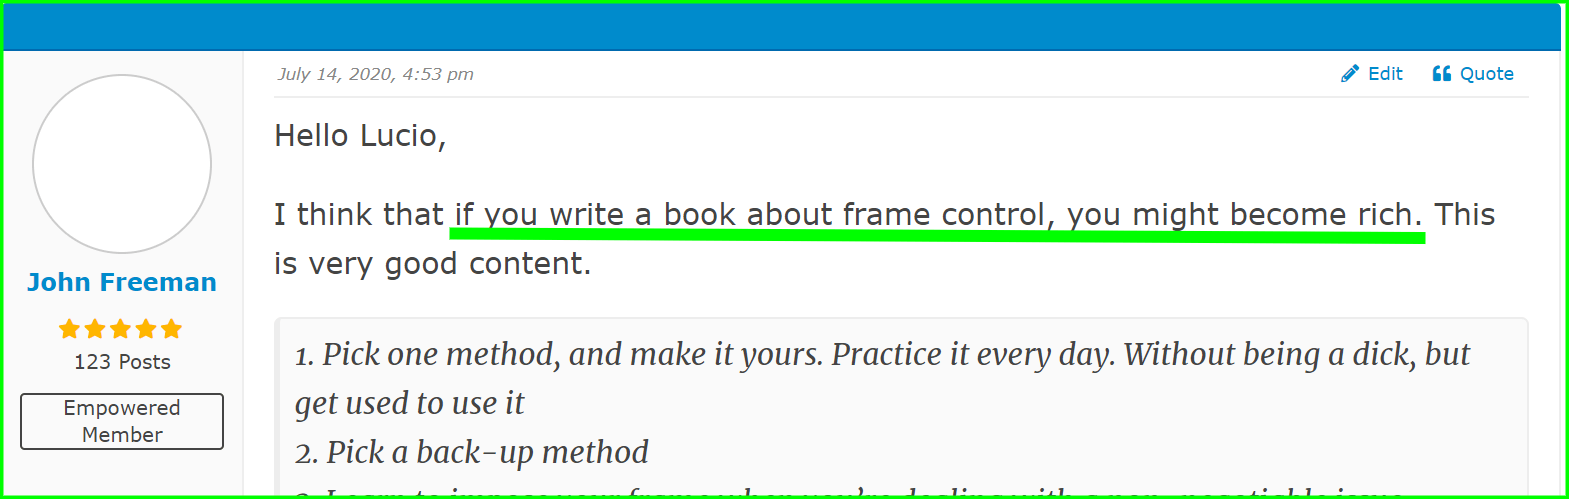 feedback on the best frame control course